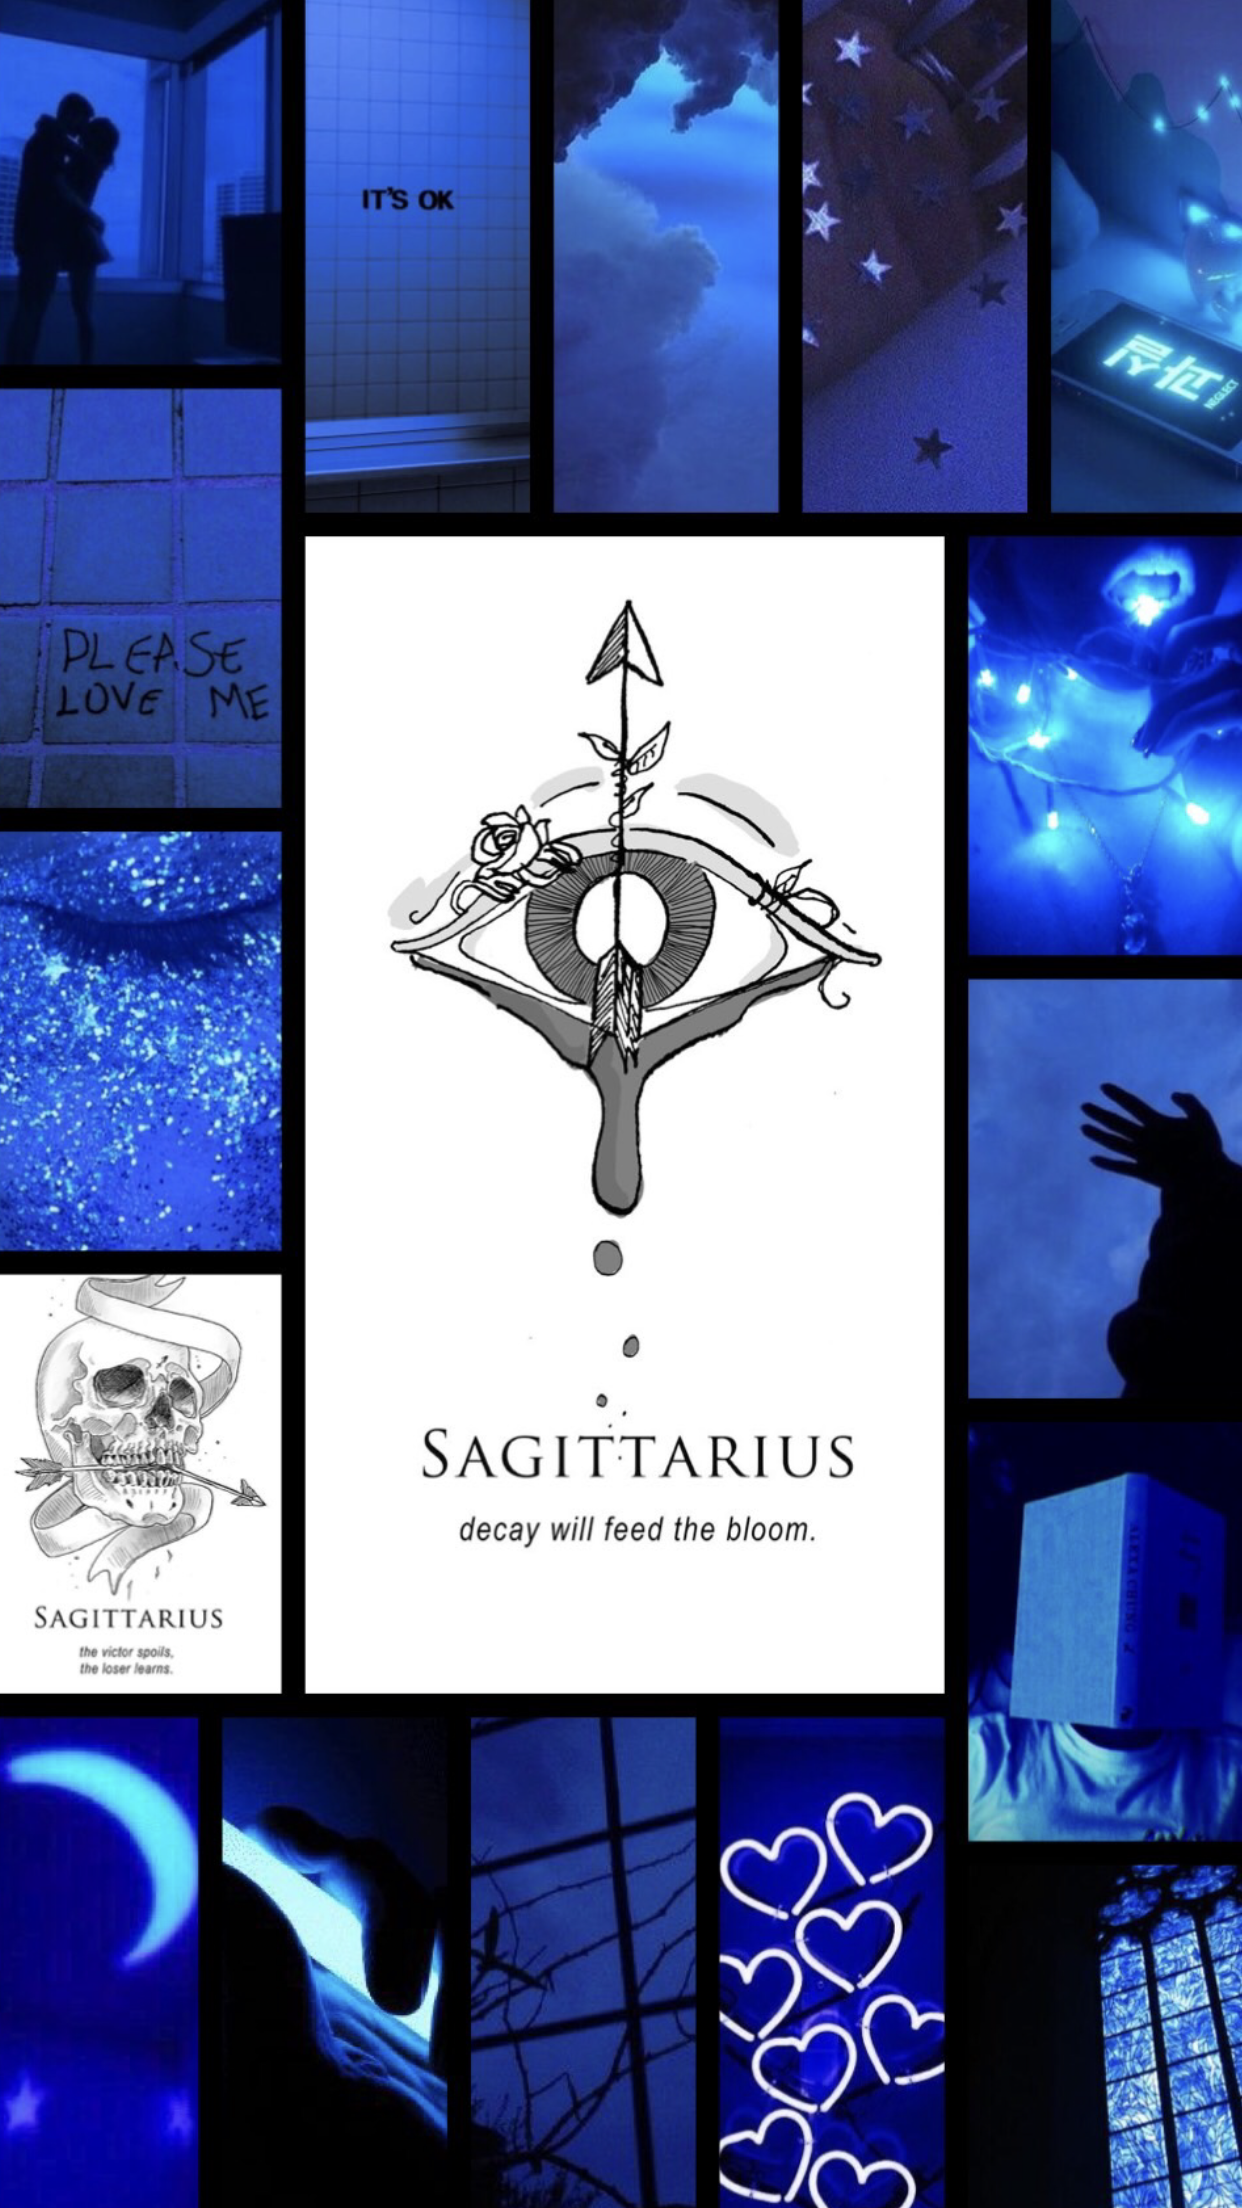 Sagittarius Aesthetic Wallpaper Sagittarius Wallpaper Dark Wallpaper Iphone Aesthetic Iphone Wallpaper